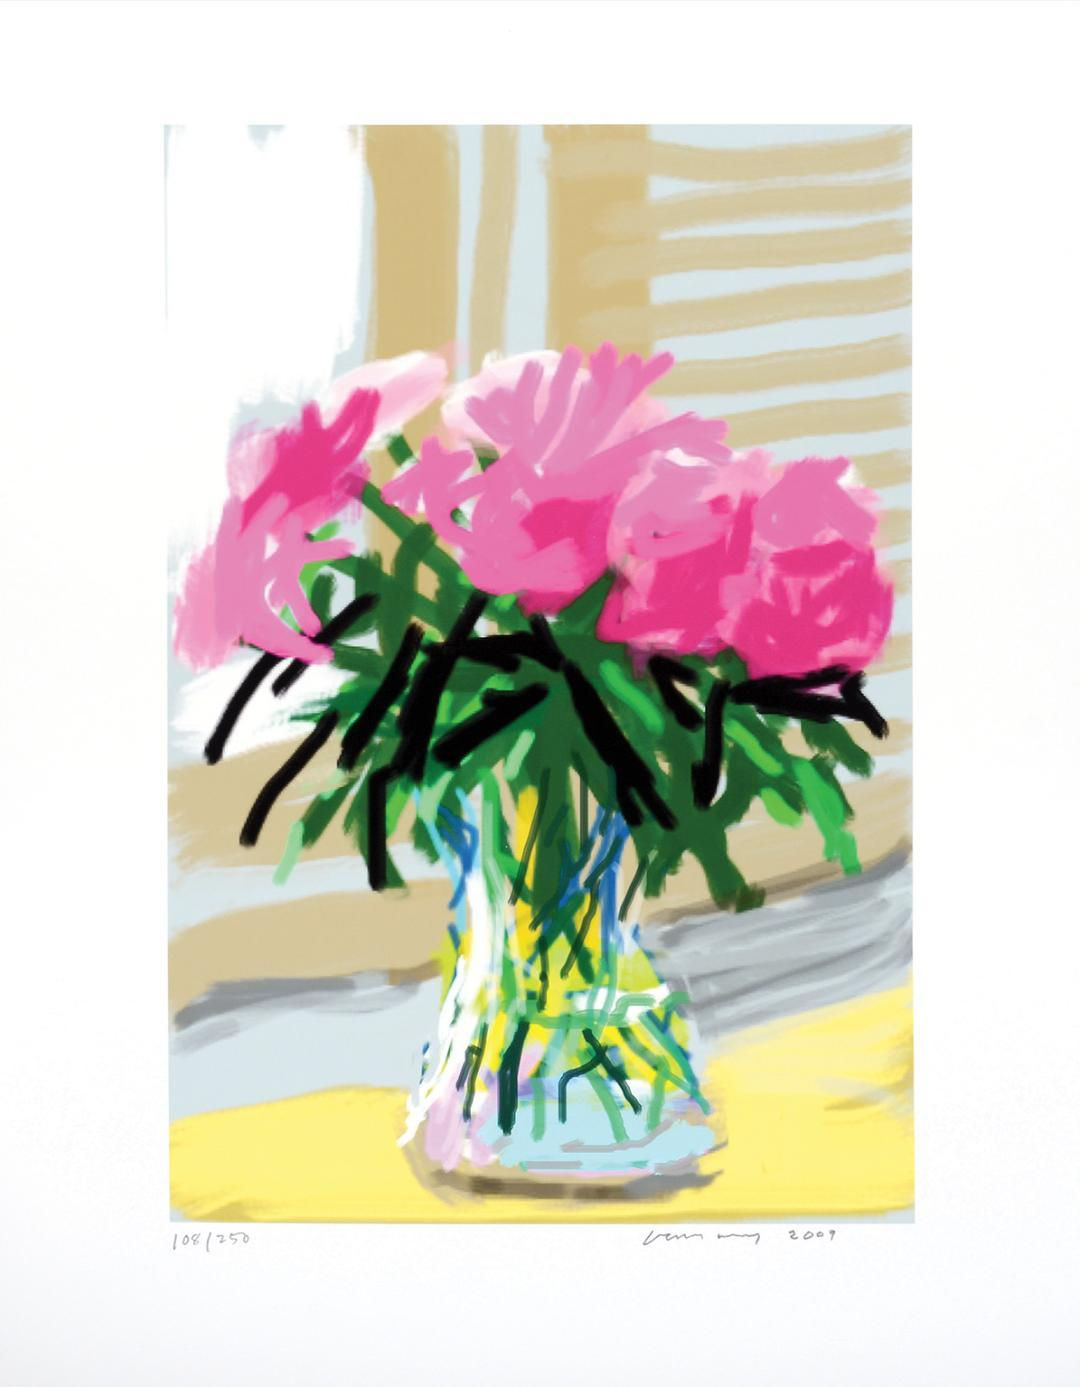 David Hockney Ipad Drawing For sale